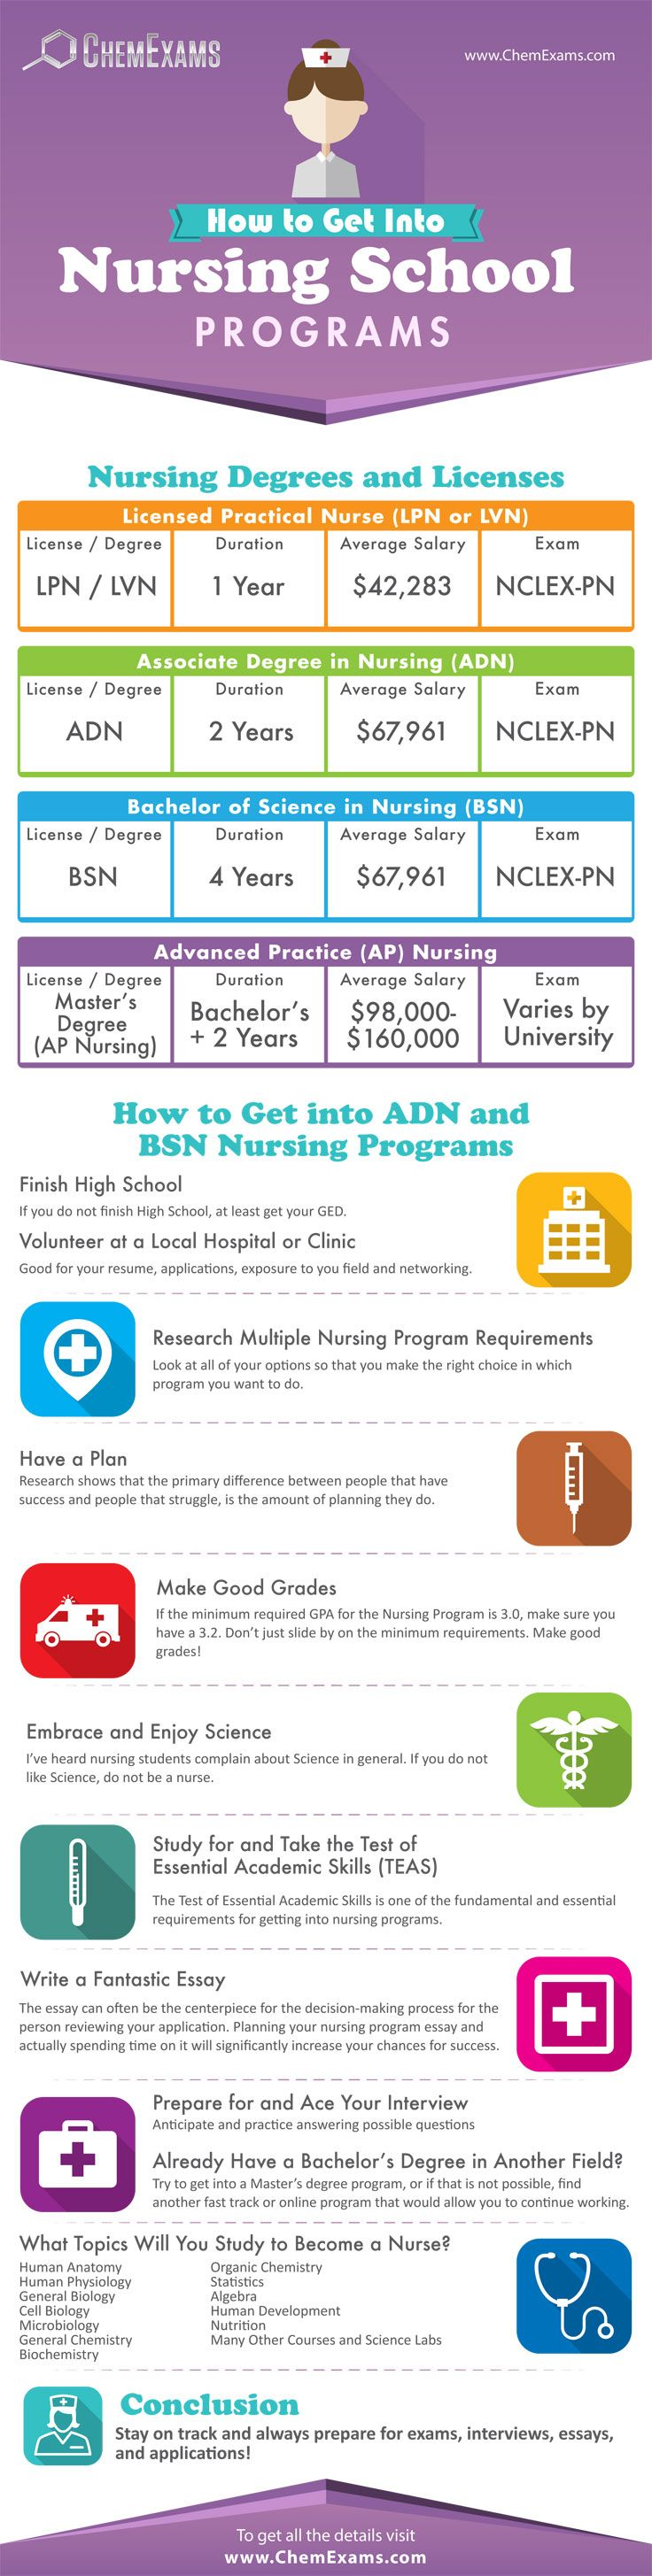 How To Get Into Nursing School Programs Infographic College